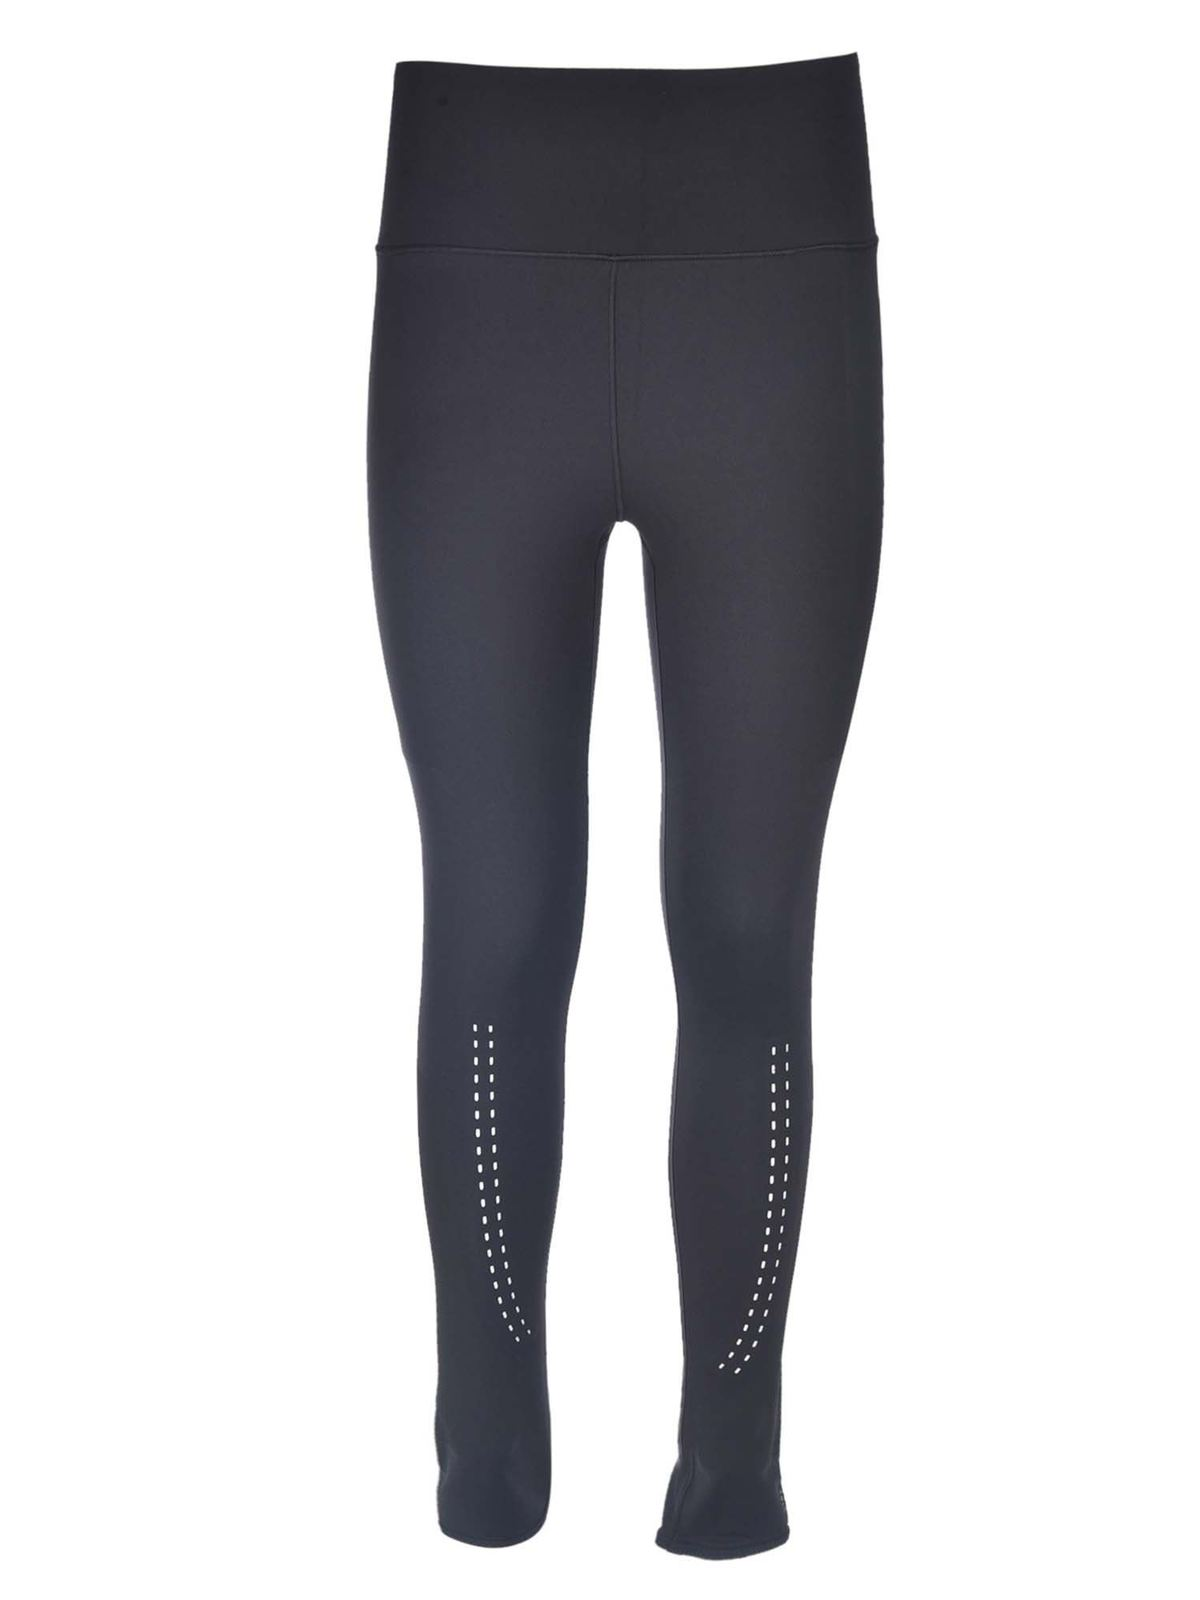 Adidas By Stella Mccartney Tight Support Core Leggings In Black